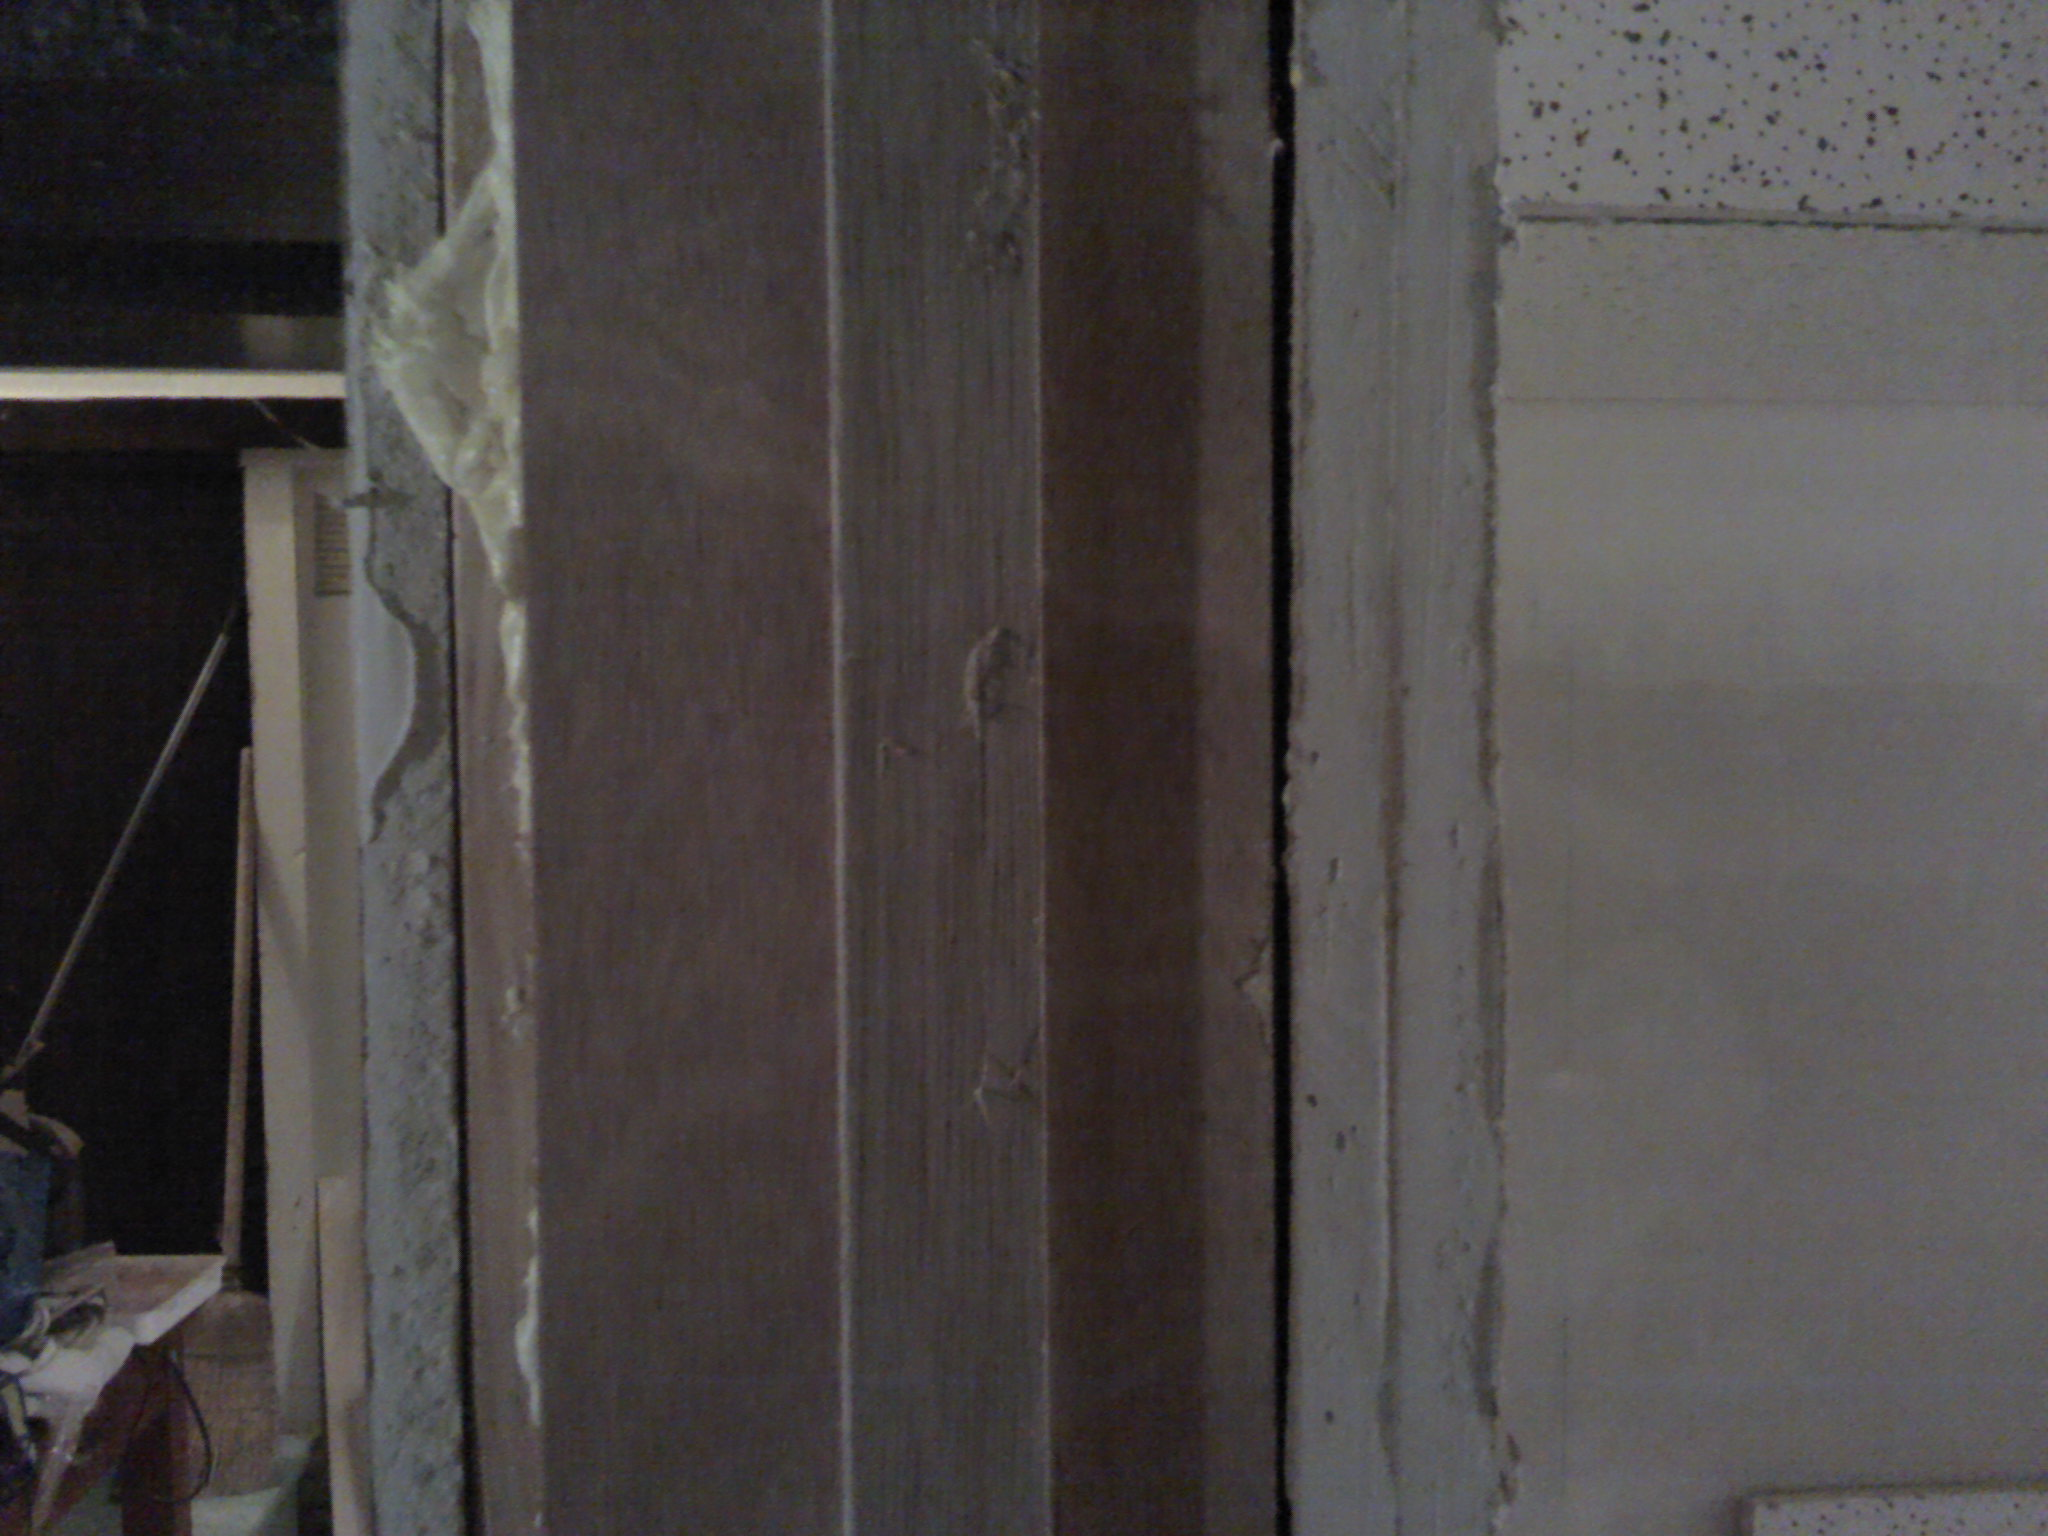 Door Frame in Profile: One  layer of drywall outside, two layers inside, wood and insulation in between